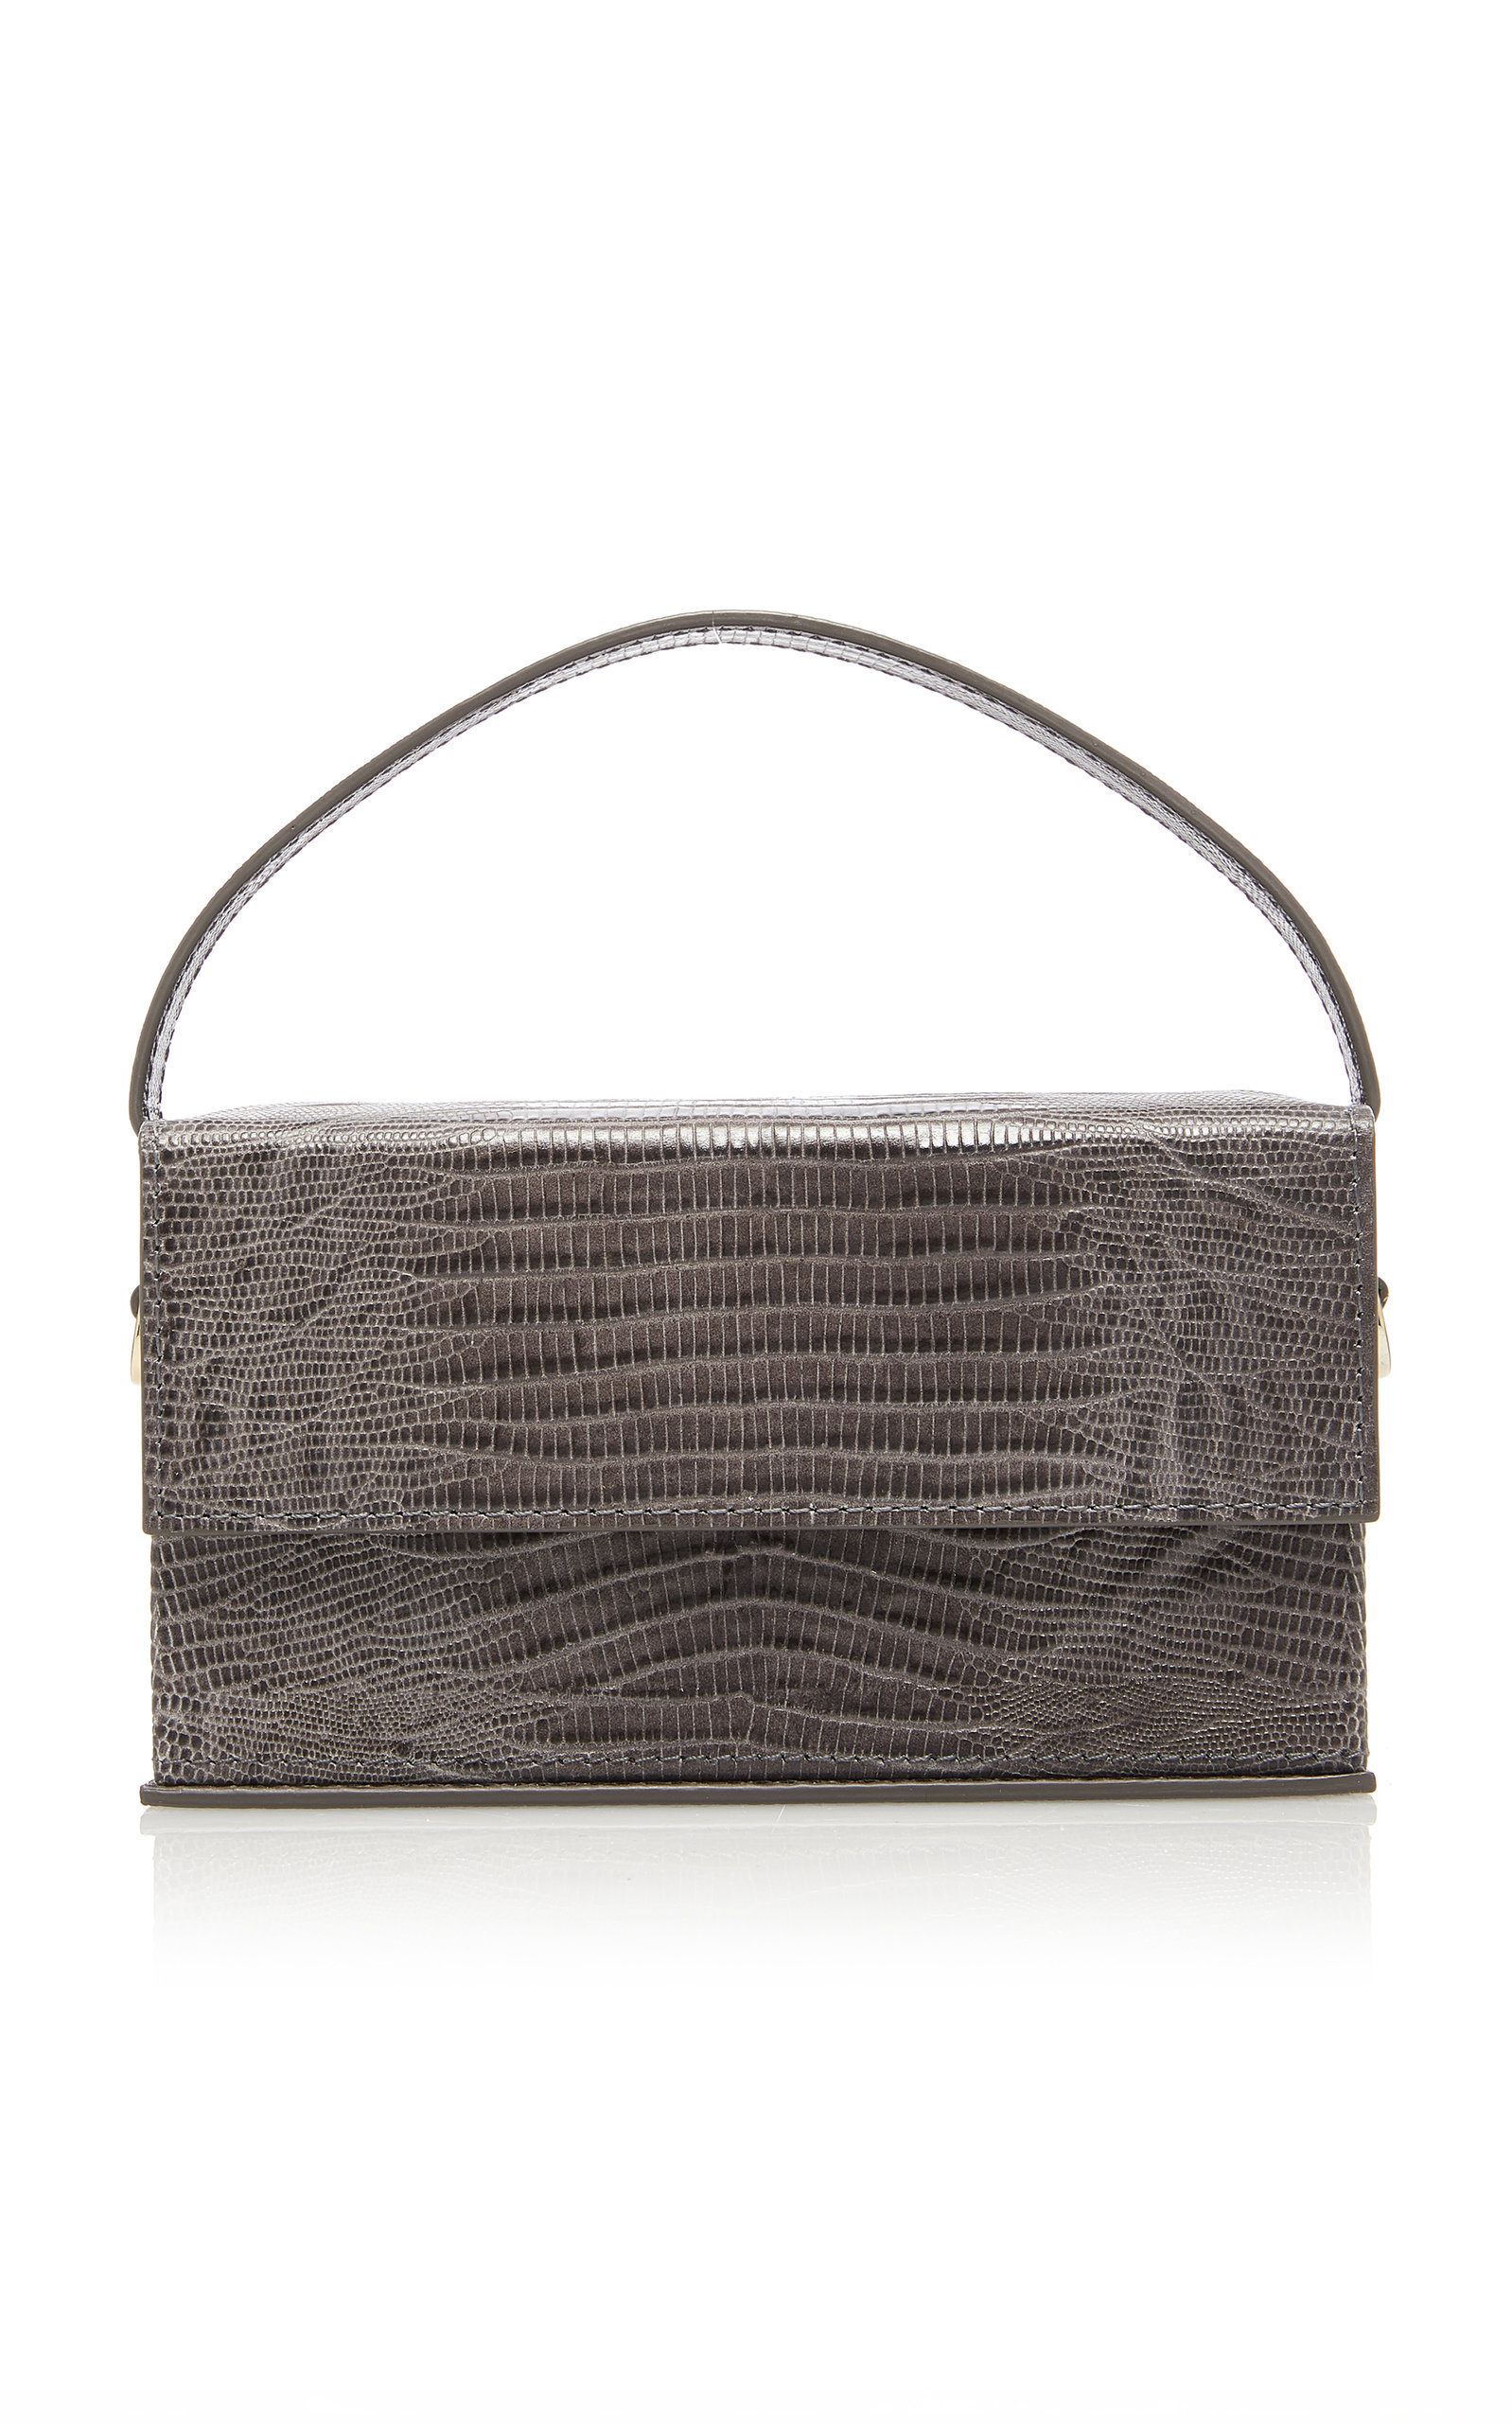 L'AFSHAR   L'Afshar Ida Embossed Leather Bag With Lucite Grey Short Chain   Goxip